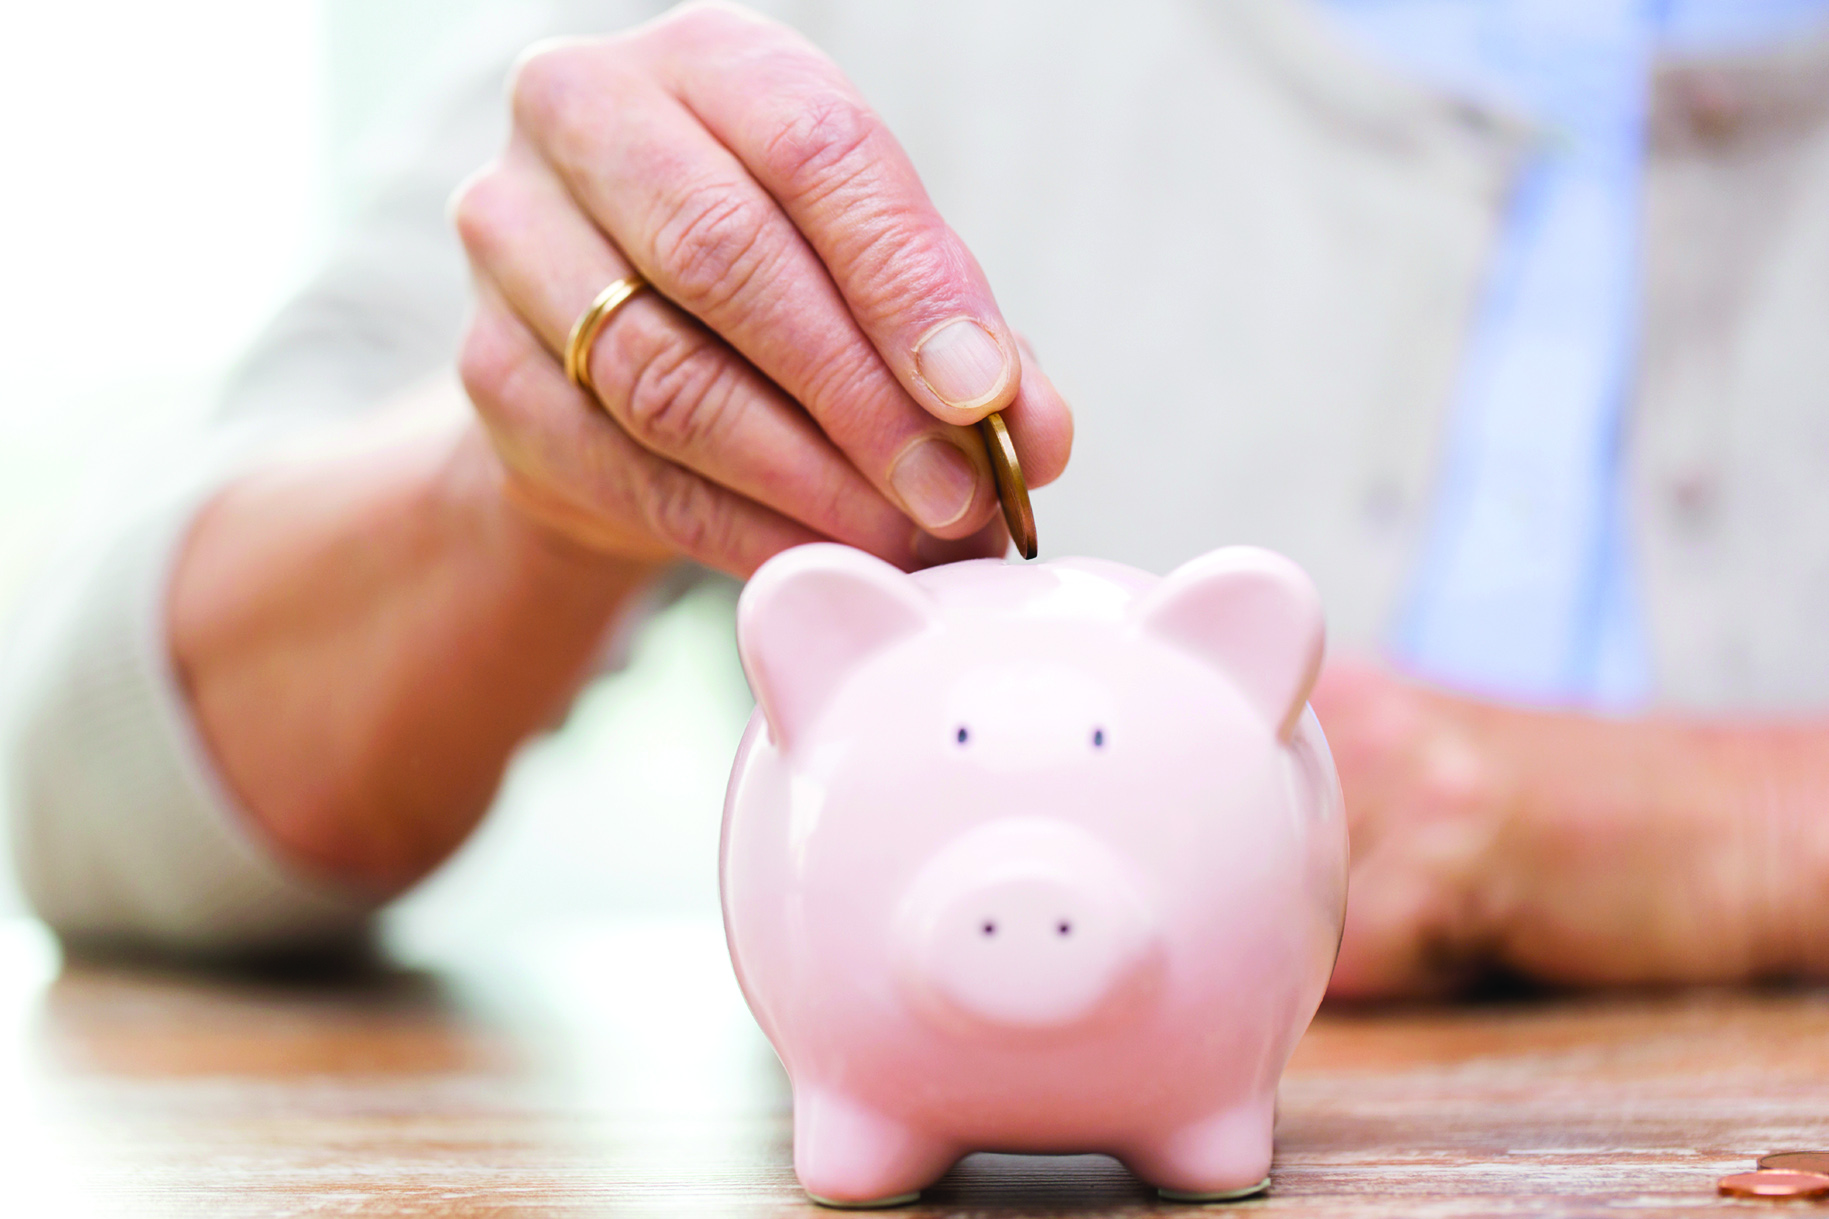 savings, money, annuity insurance, retirement and people concept - close up of senior woman hand putting coin into piggy bank